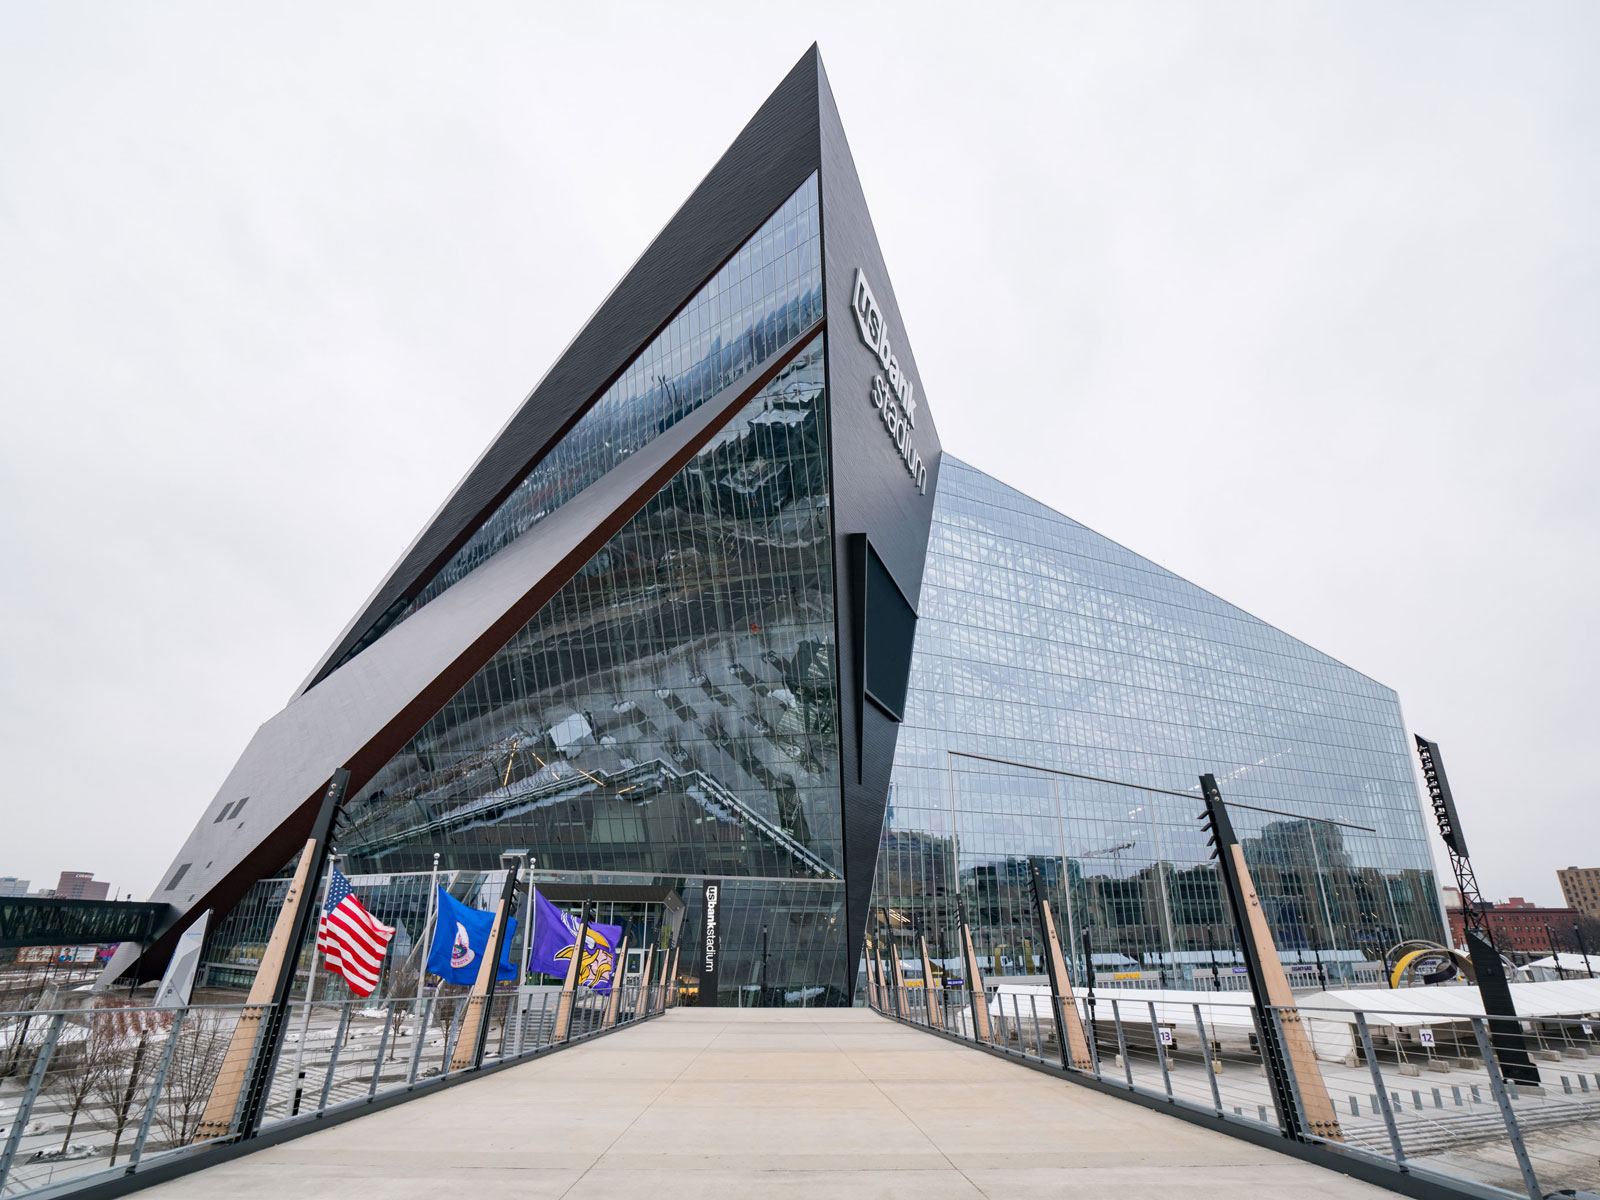 The Minneapolis Super Bowl Tailgate You Can't Miss